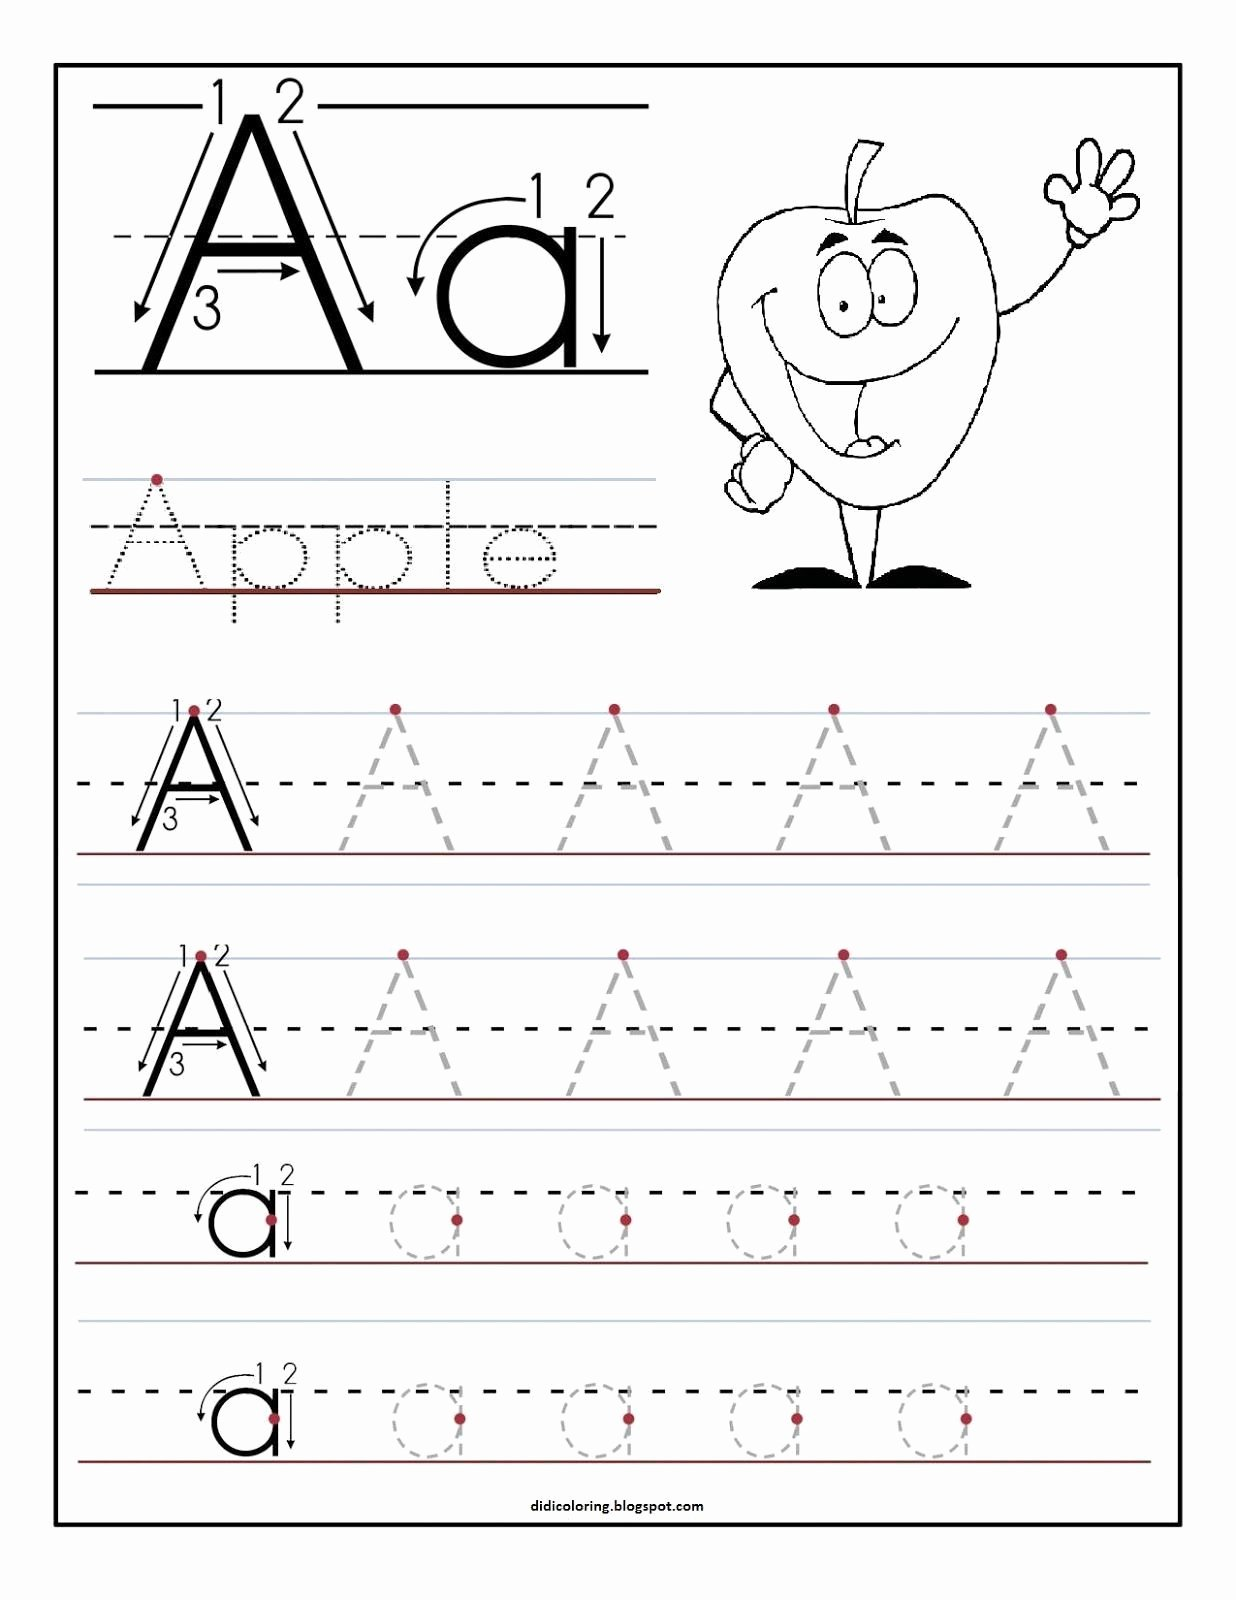 Printable Letter Worksheets for Preschoolers Lovely 16 Learning to Write Letters Free Printables